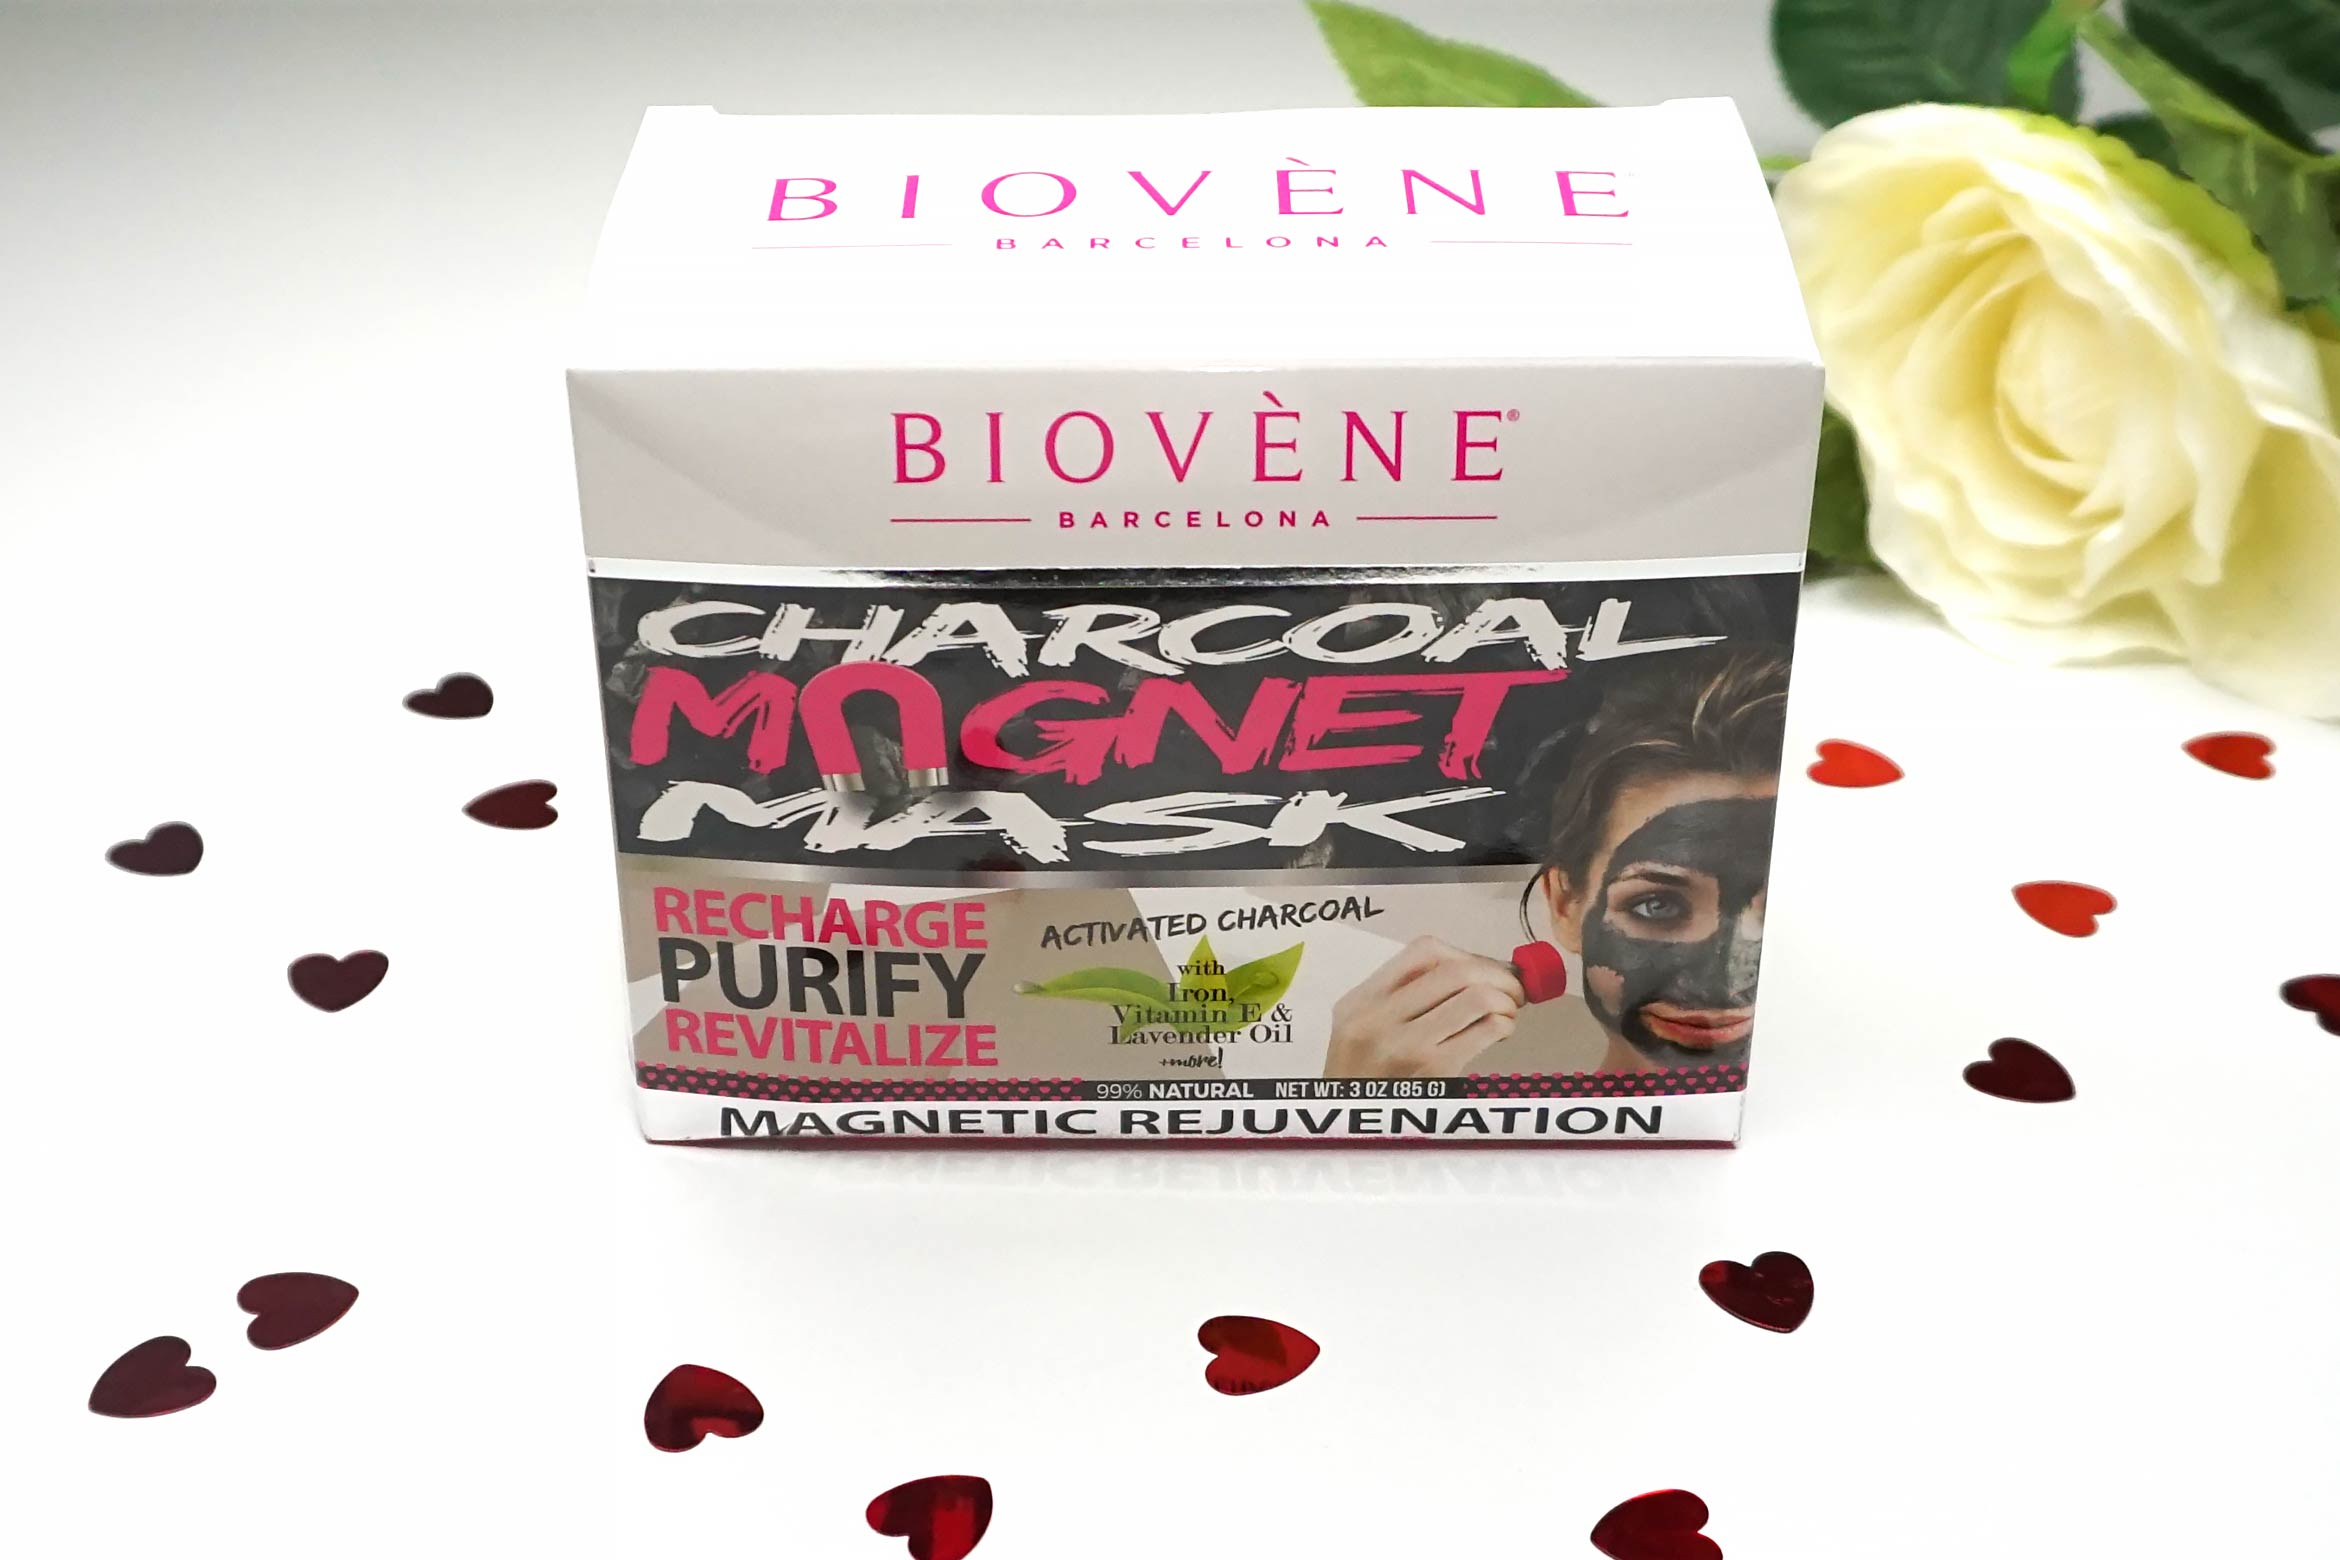 Biovene-charcoal-magnet-mask-review-4